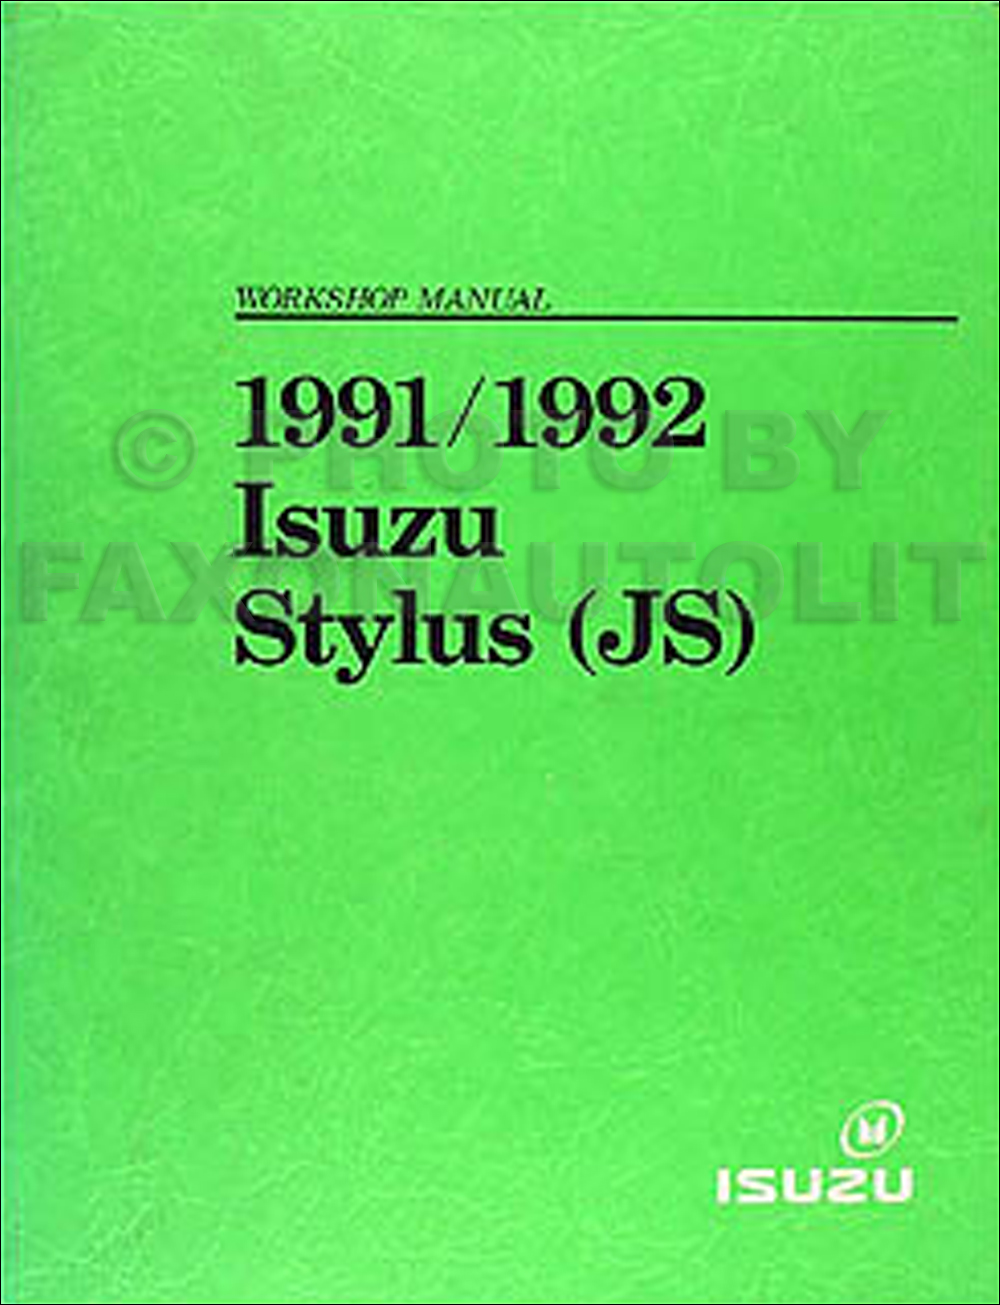 1991/1992 Isuzu Stylus Repair Manual Original